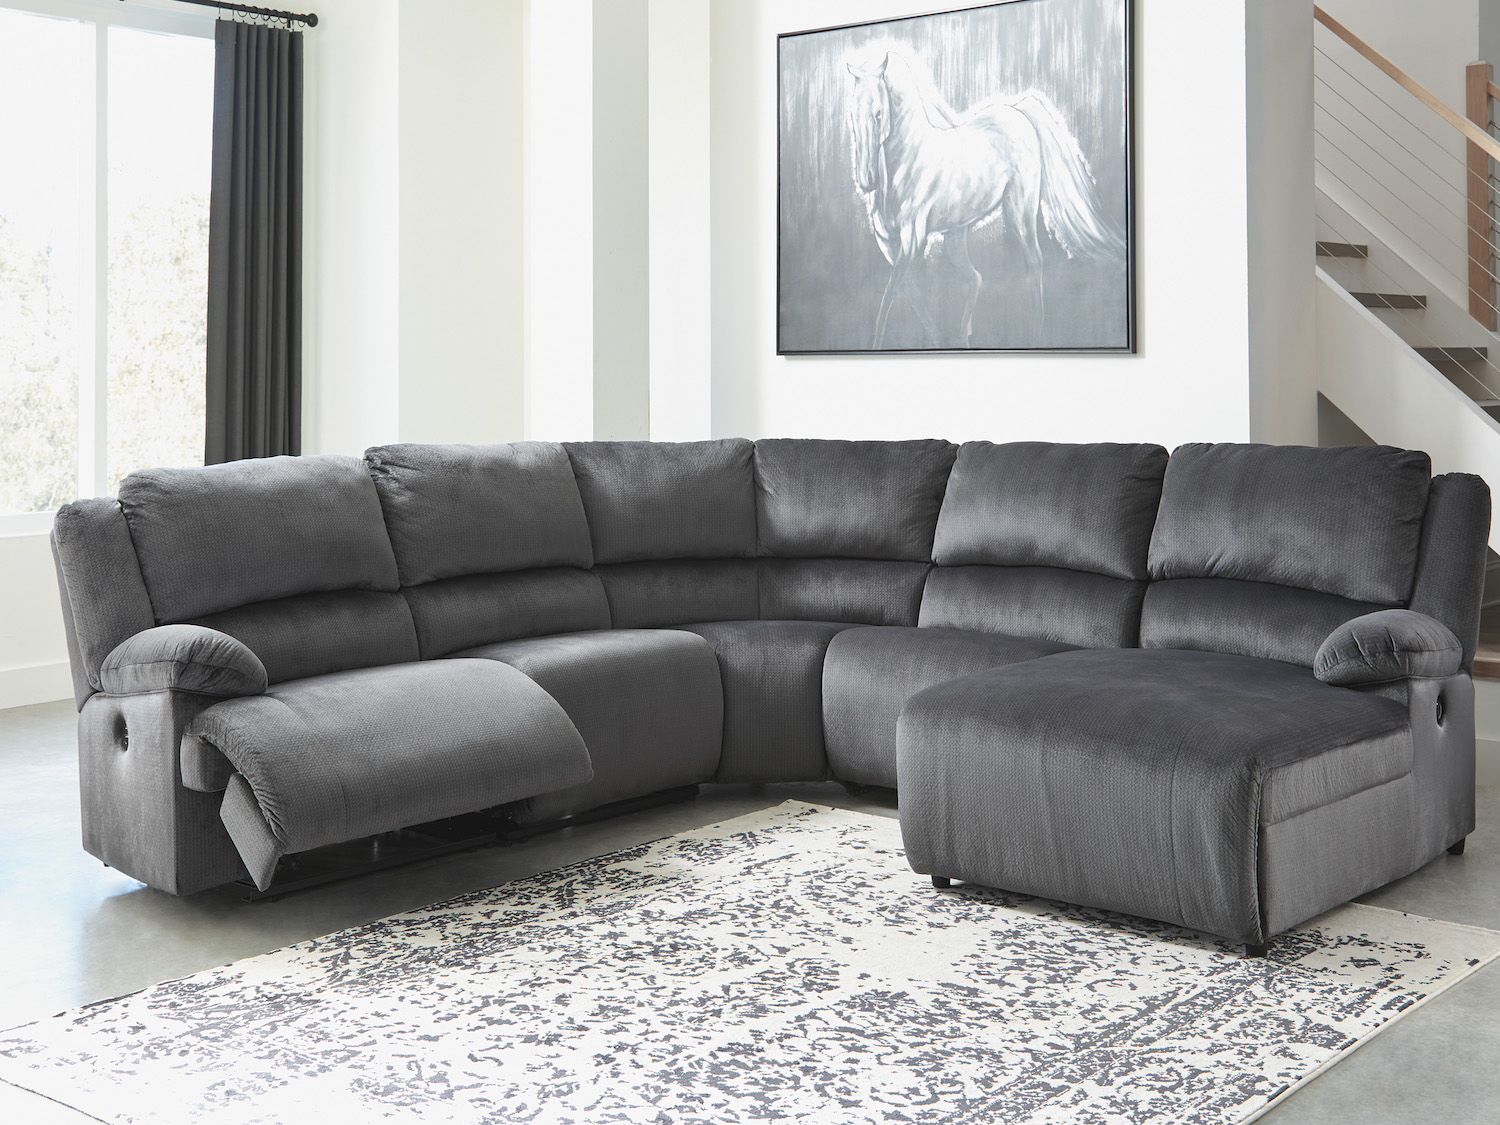 Clonmel Power Recliner Sectional, 365, Sectionals by Midha Furniture to Brampton, Mississauga, Etobicoke, Toronto, Scraborough, Caledon, Oakville, Markham, Ajax, Pickering, Oshawa, Richmondhill, Kitchener, Hamilton, Cambridge, Waterloo and GTA area